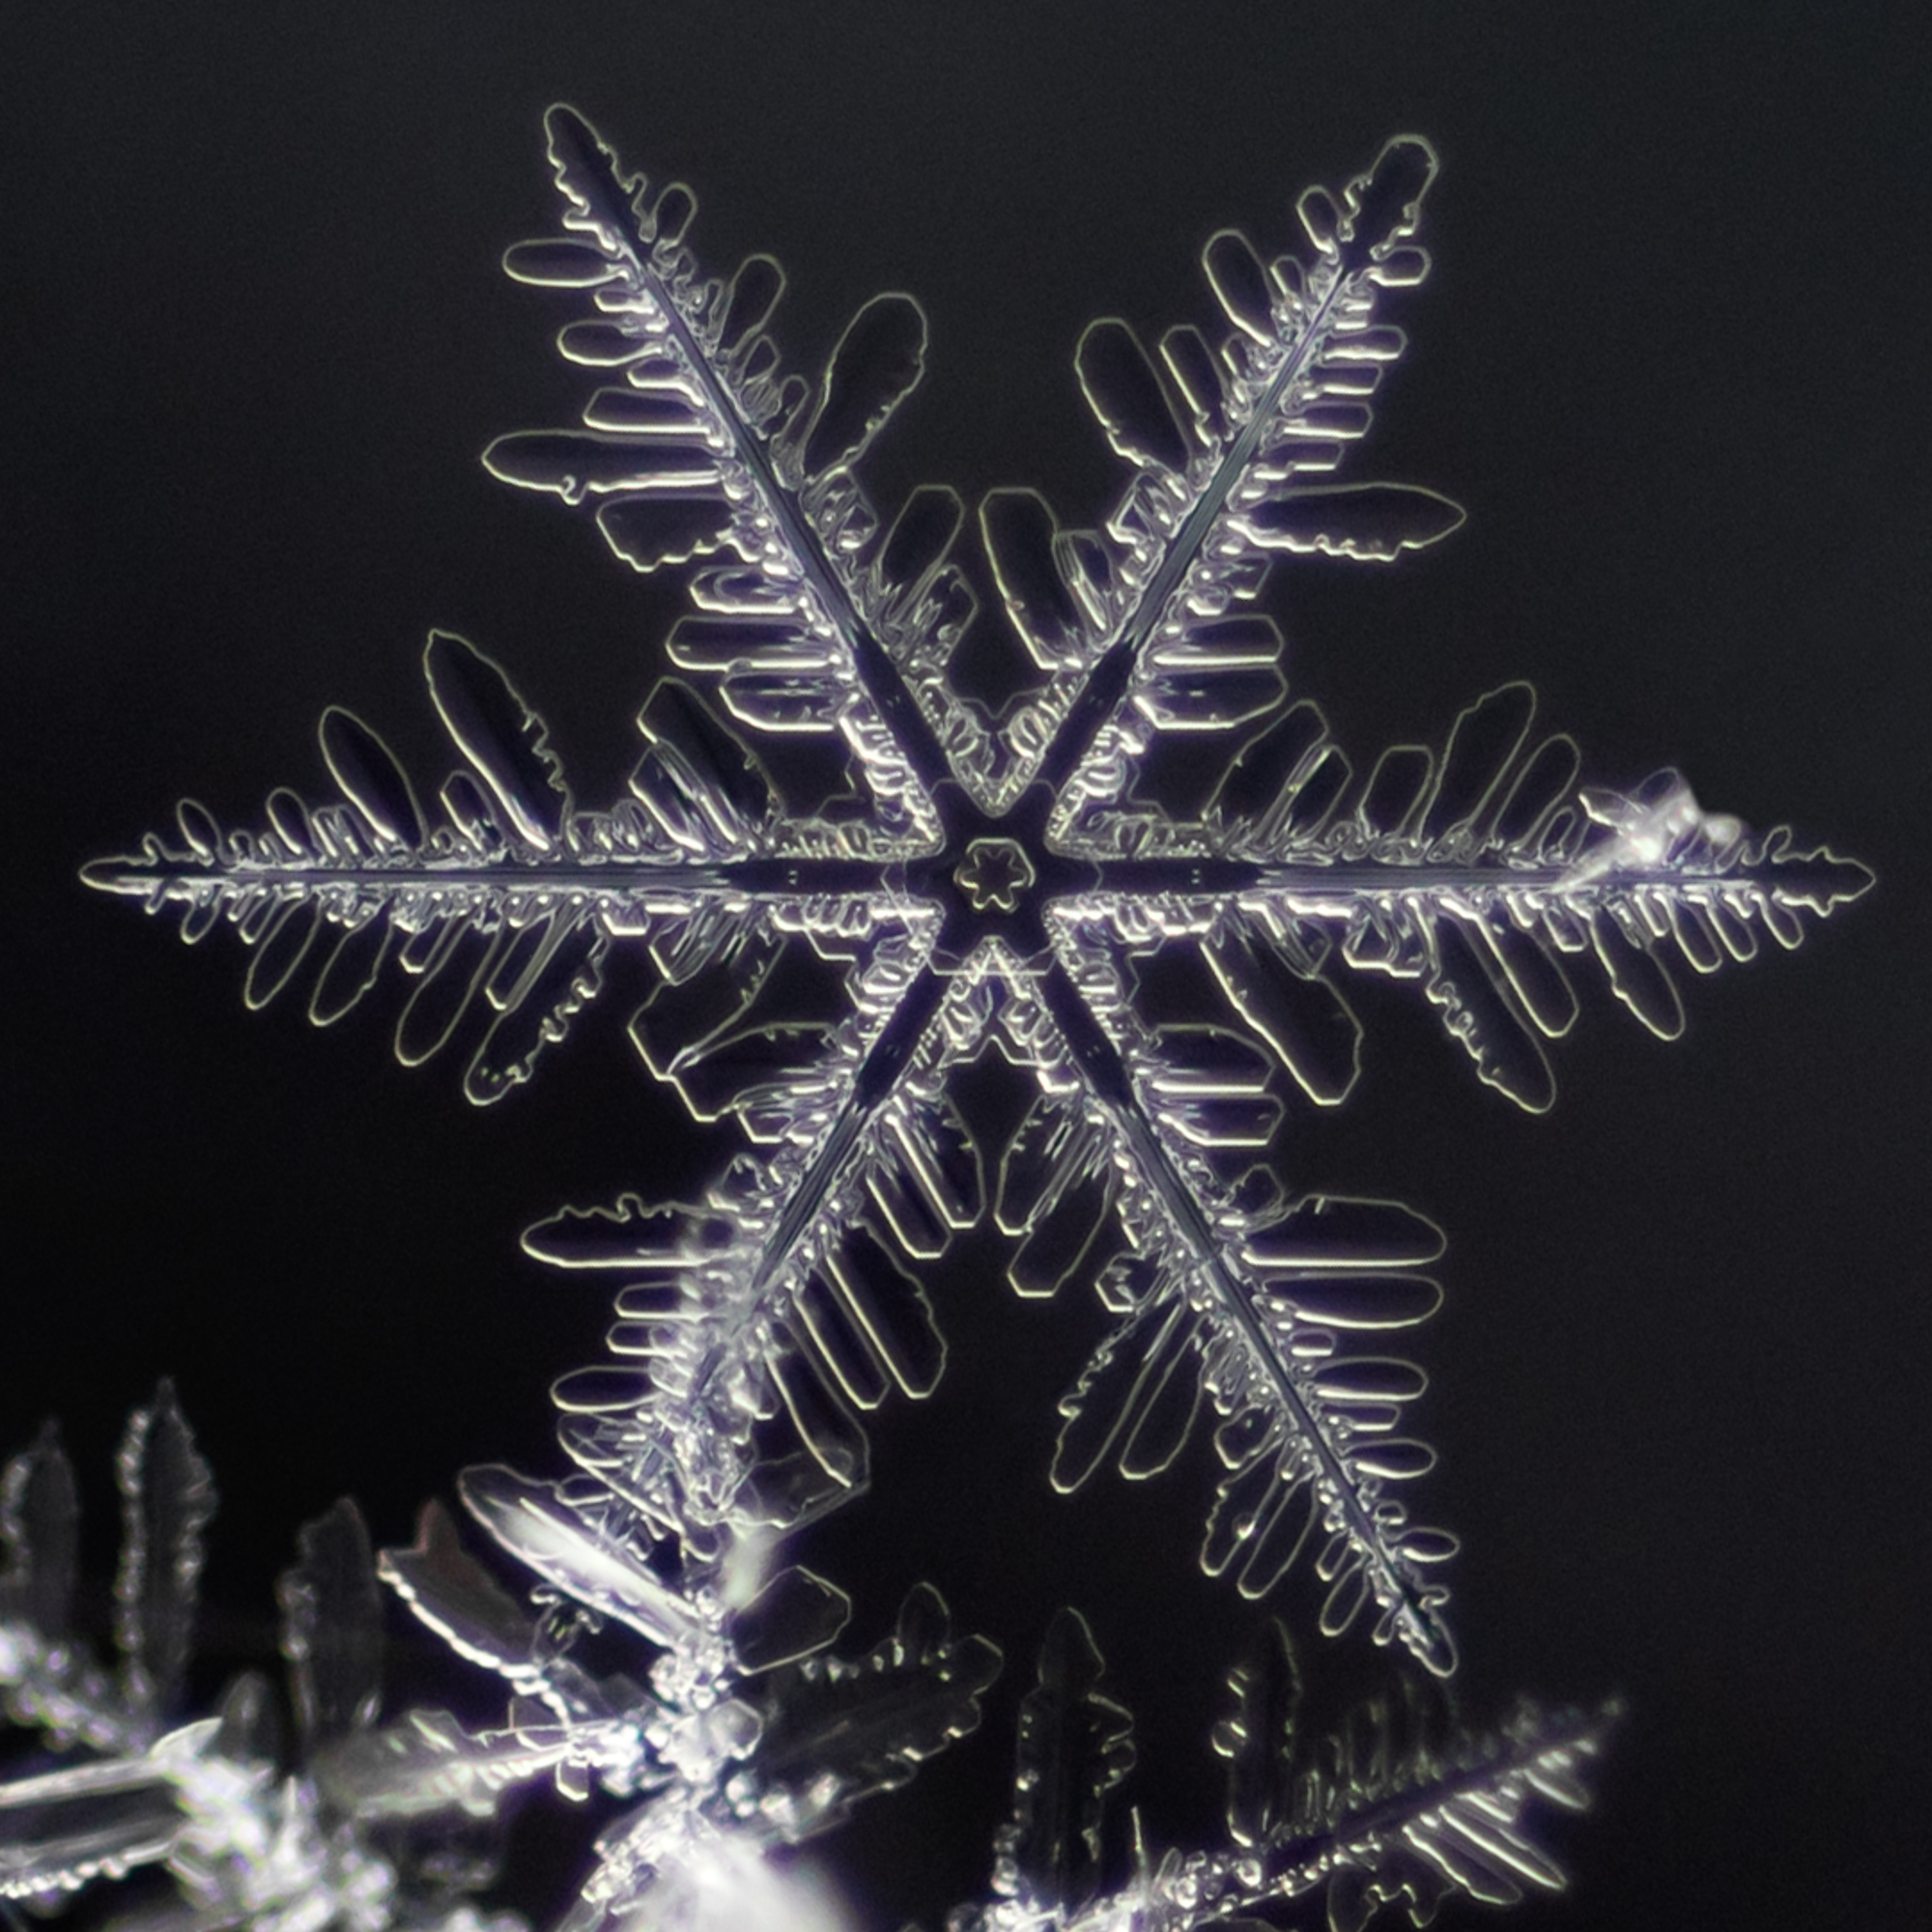 snowflake photography sample-5.jpg